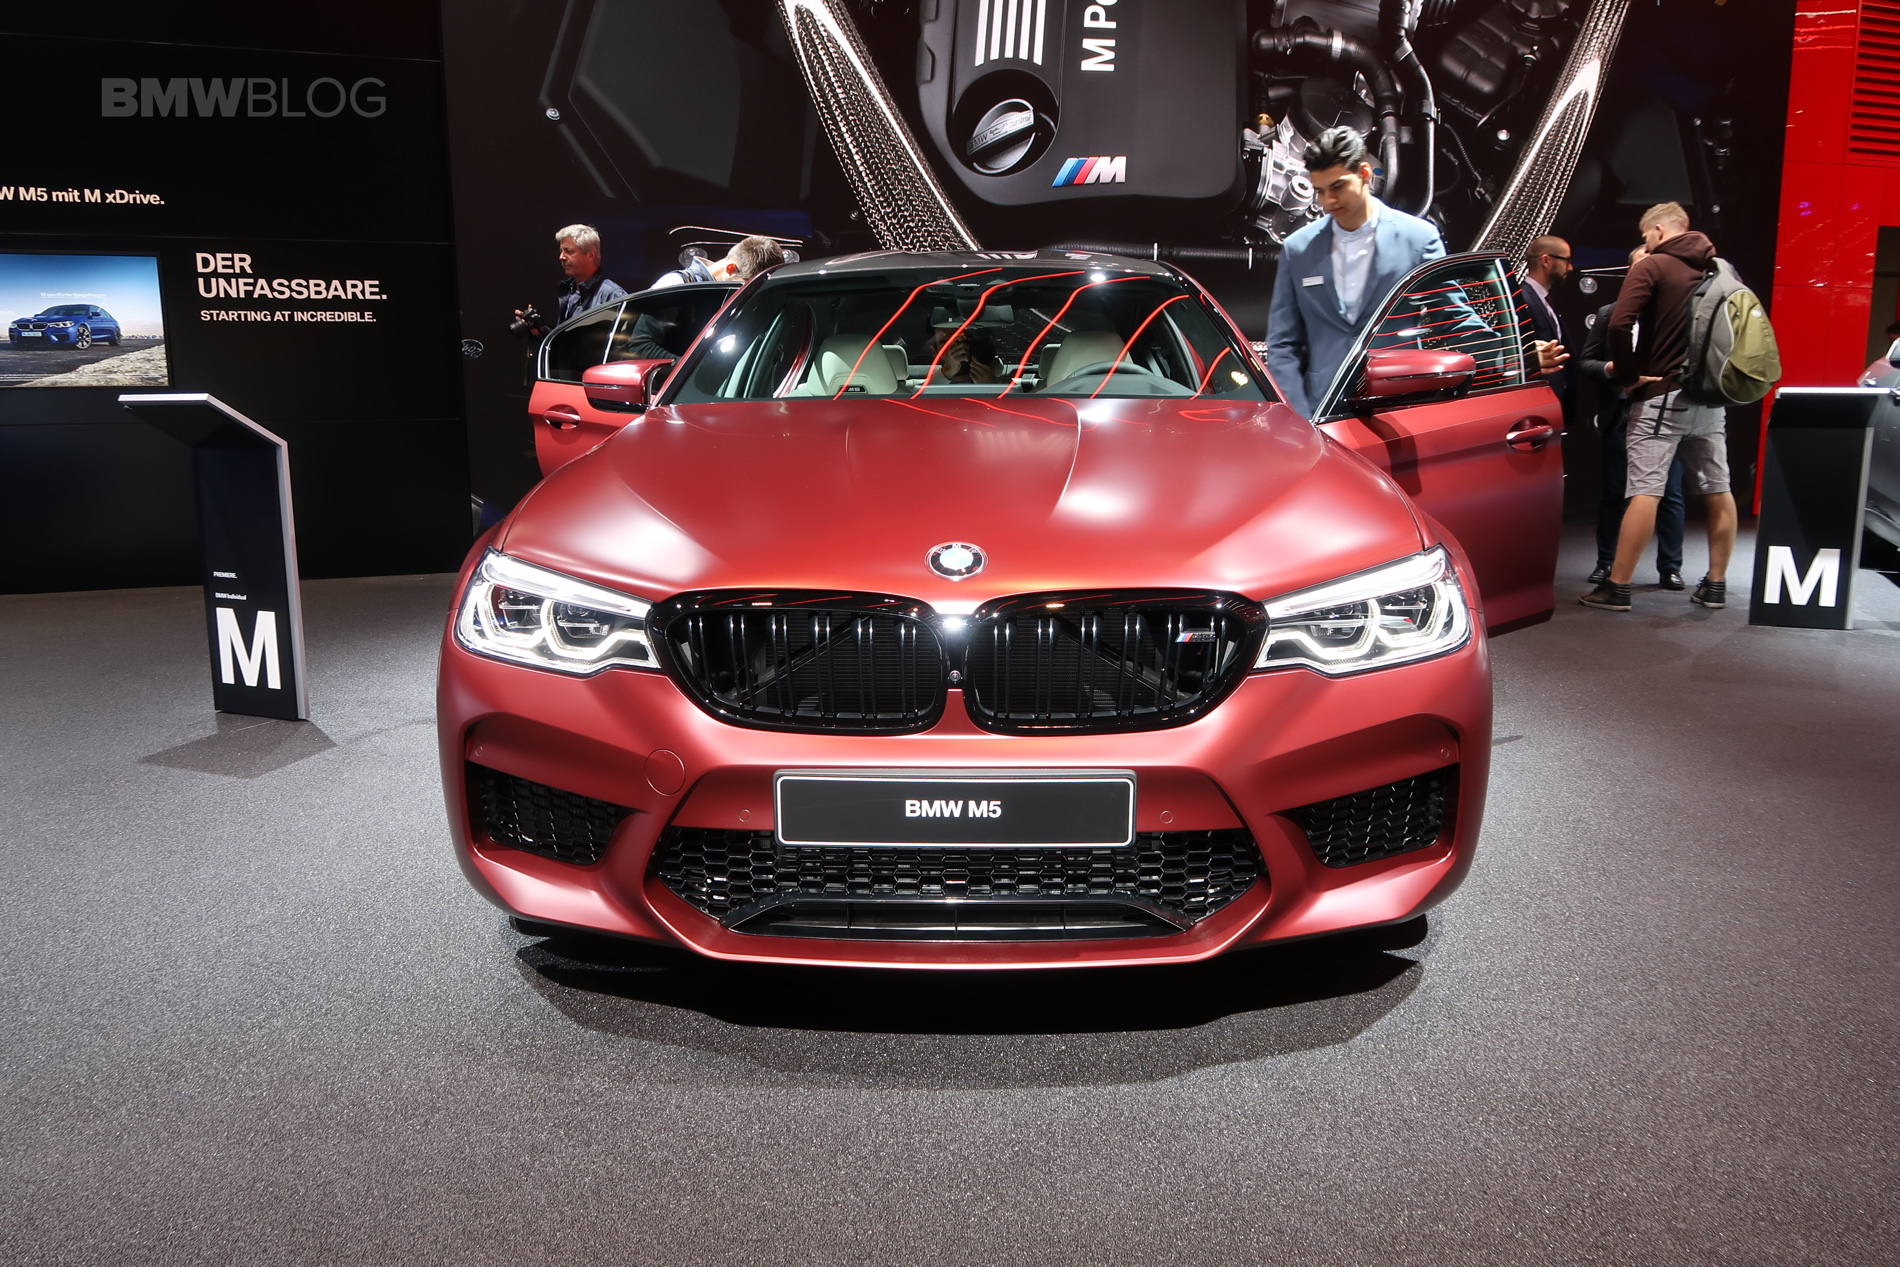 2017 Frankfurt Auto Show Bmw M5 First Edition Frozen Dark Red Metallic